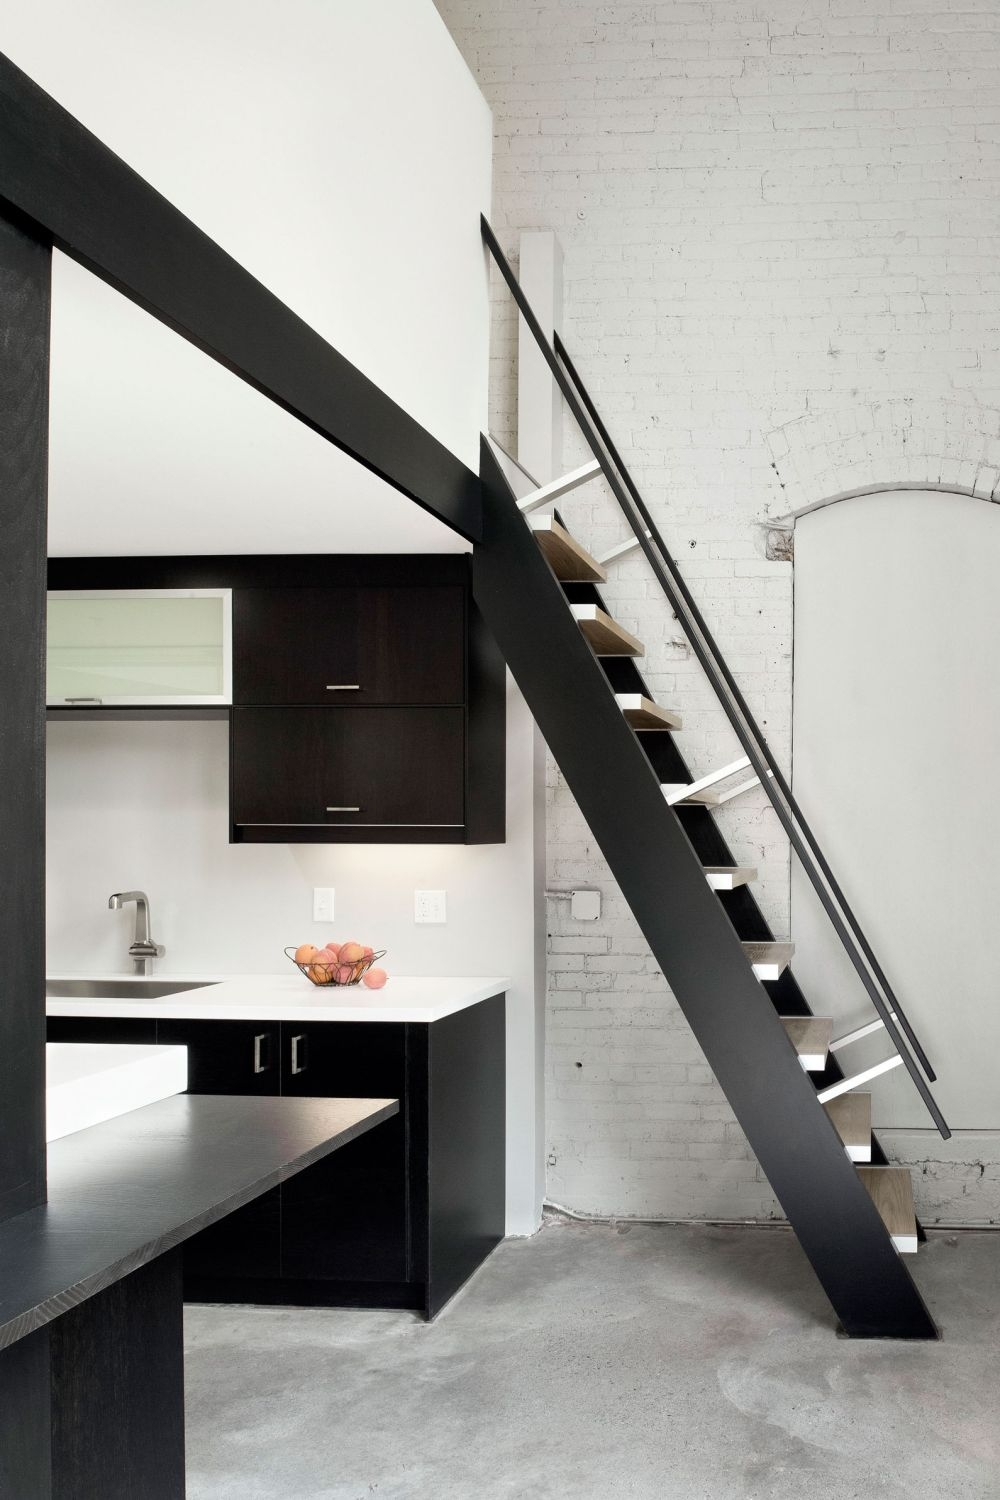 The 13 Types Of Staircases That You Need To Know | Style Of Stairs Inside House | Outside India House | Spiral | Design | Mansion | Historic House